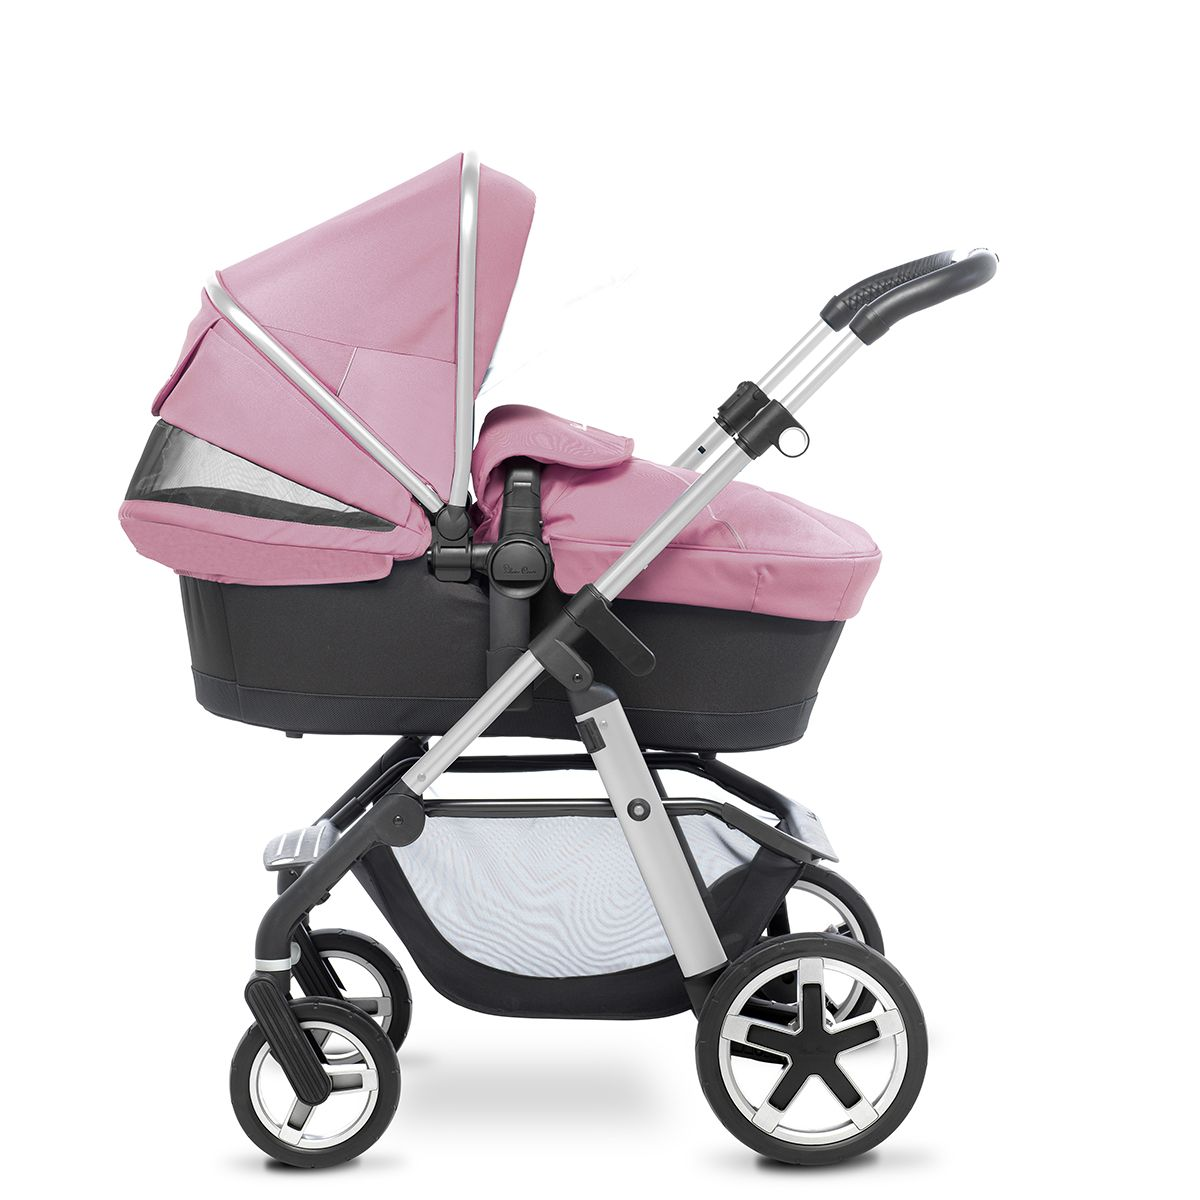 Lightweight Off Road Pram Solid Bringing Up A Child Advice For Happy Children